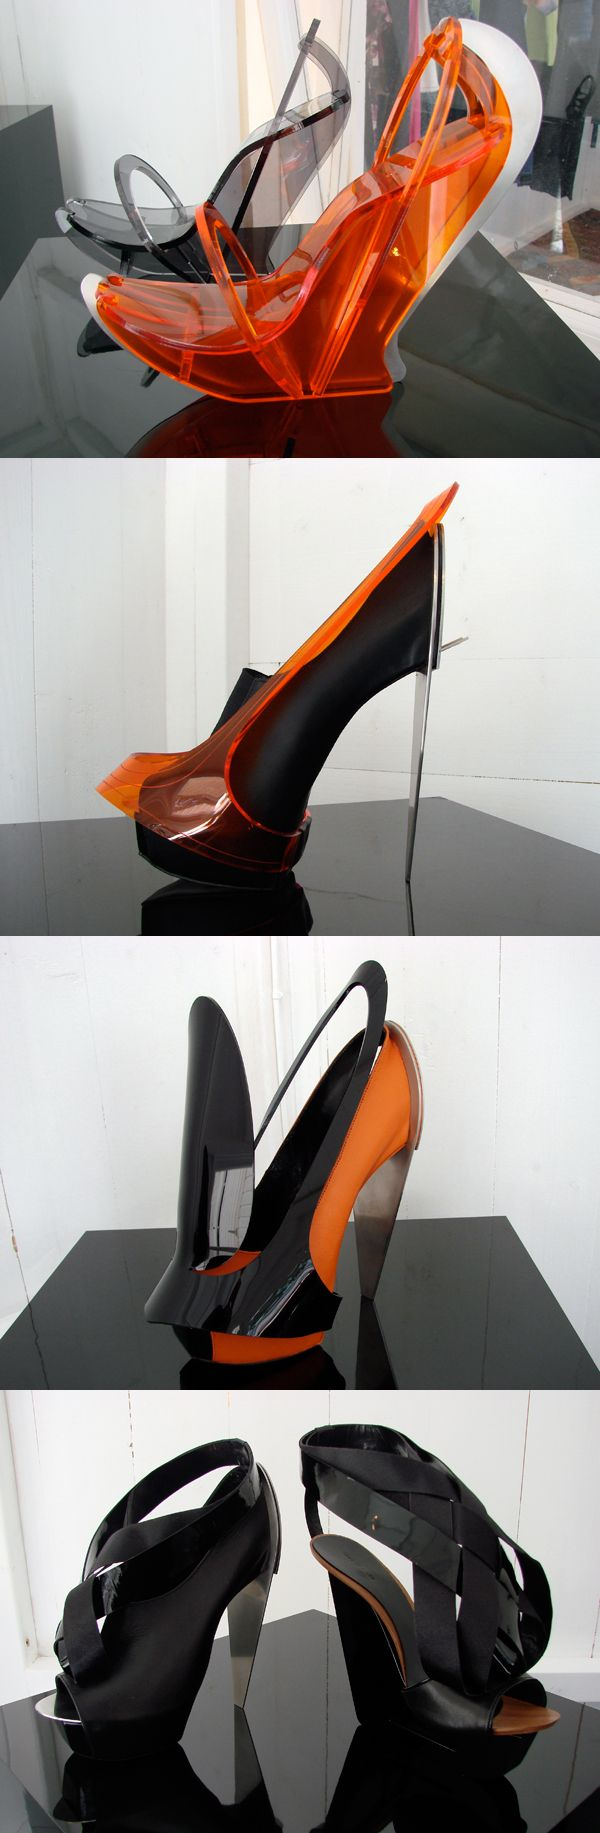 Chau Har Lee SS11 (more avant-garde shoes located on Avant-garde/Unexpected board)